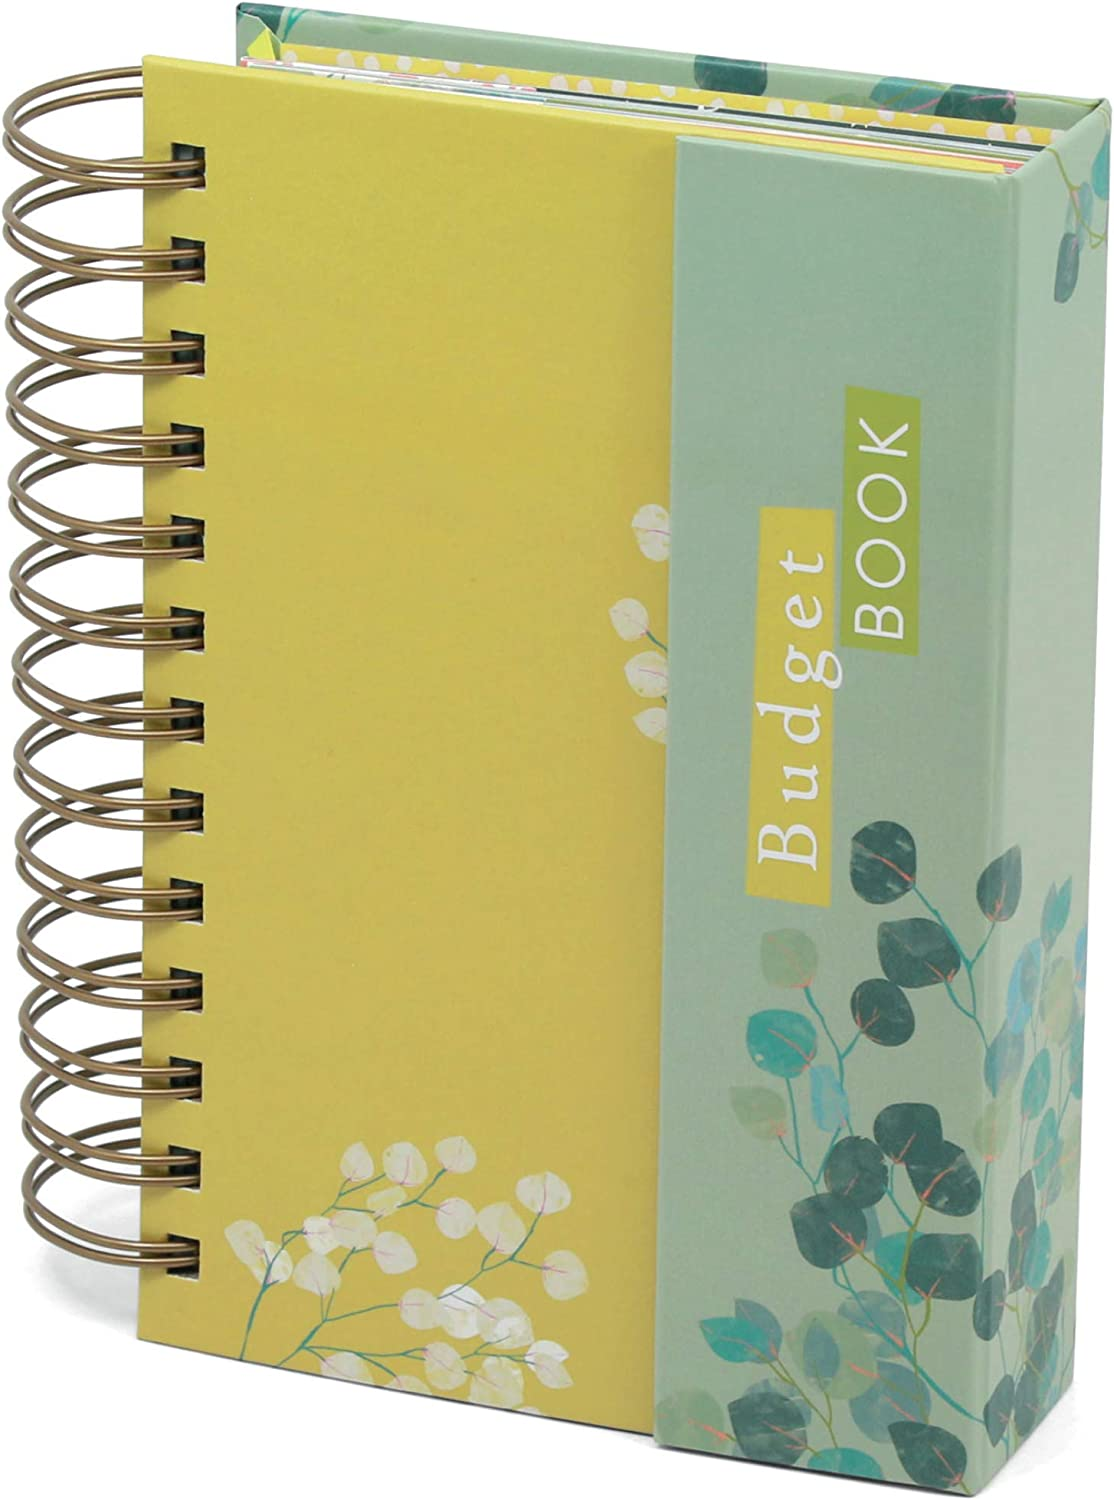 Boxclever Press Portable Budget Planner with Pockets. Bill Organizer with Expense Trackers. Take Control of Your Personal Finances with This Undated Planner. Compact Size Budget Book 7 x 4.5ins